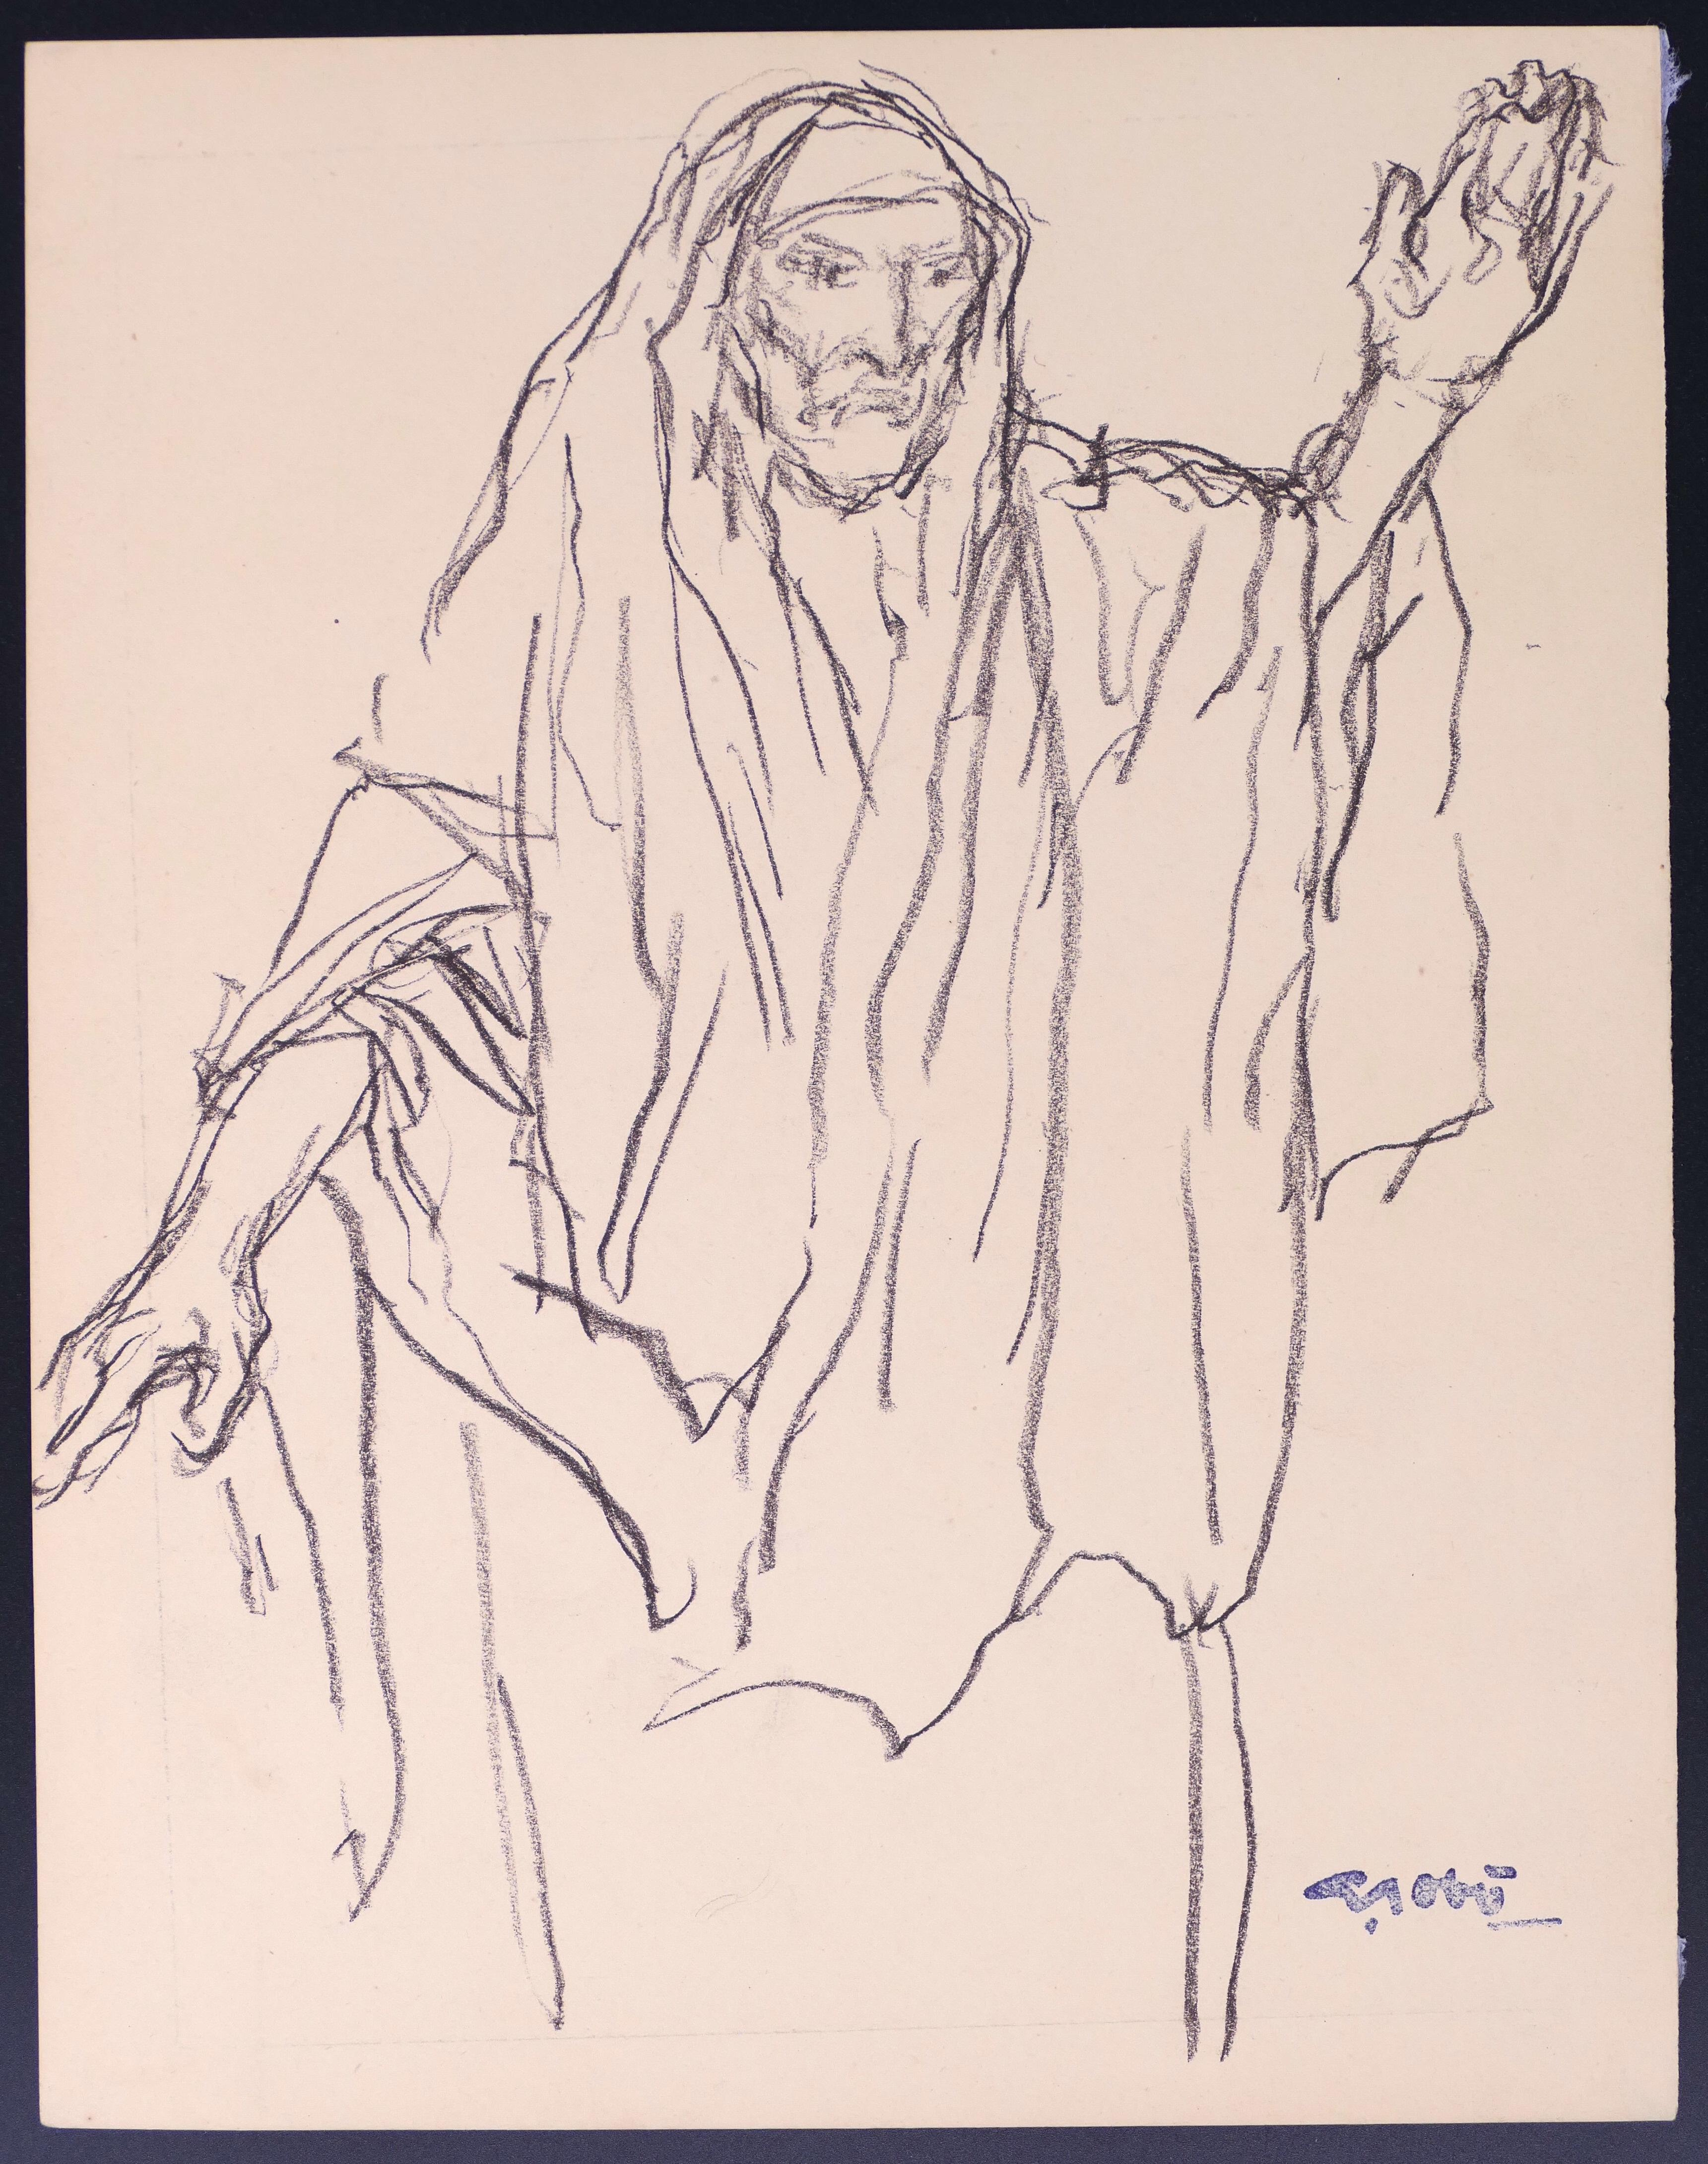 Homme Main Levée - Original Drawing by Georges Gôbo - Early 20th Century